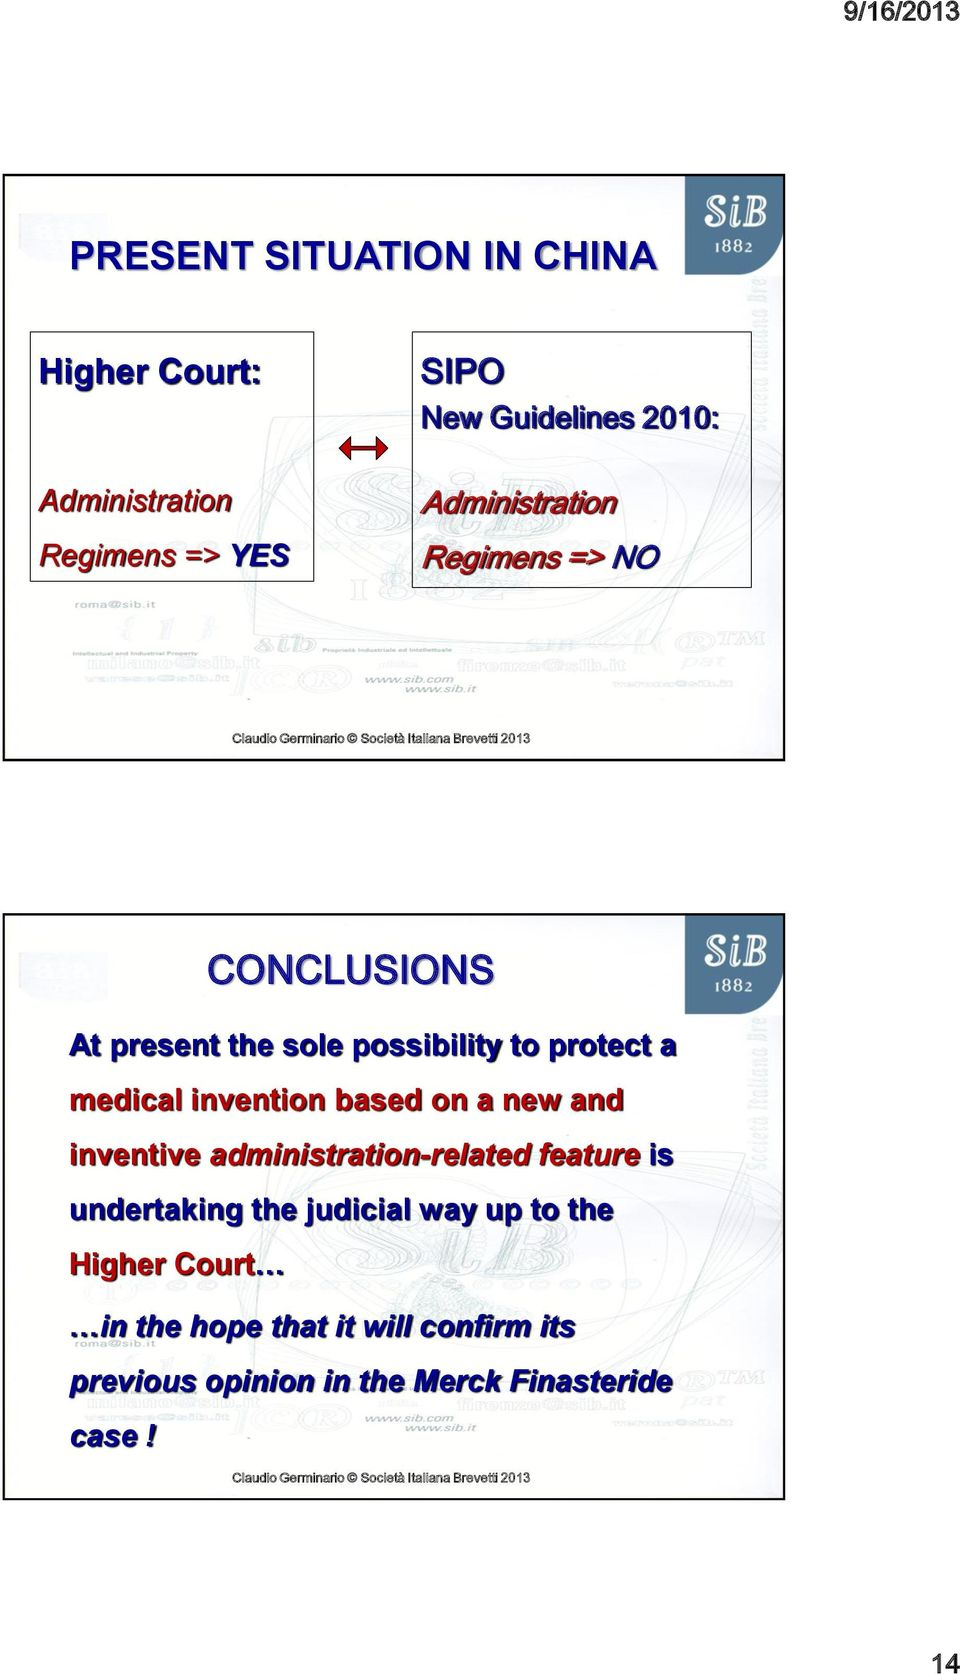 invention based on a new and inventive administration-related feature is undertaking the judicial way